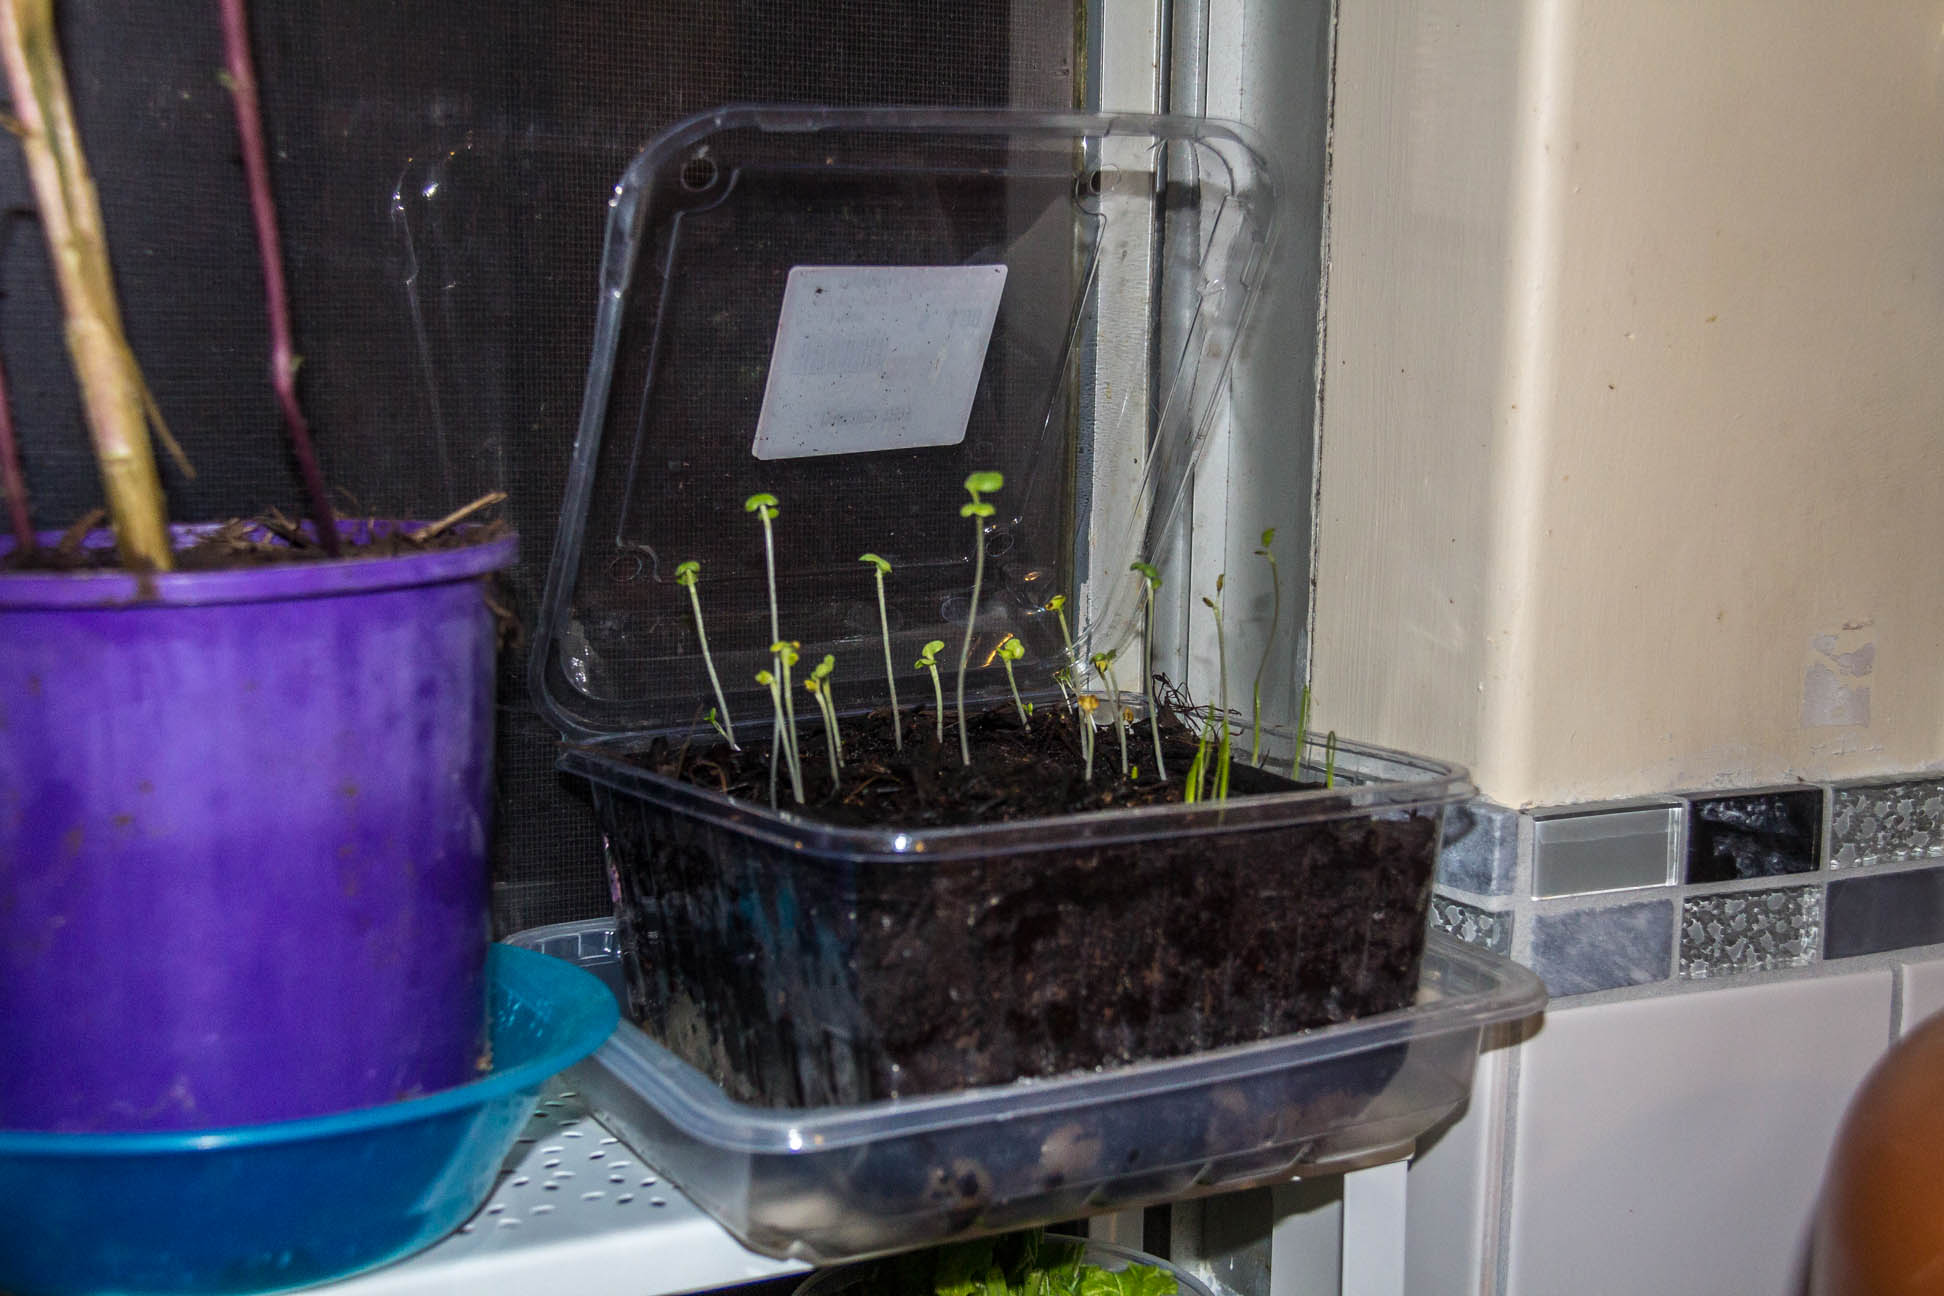 04/05/15 Day 11 The seedlings are going well. and more are sprouting :)